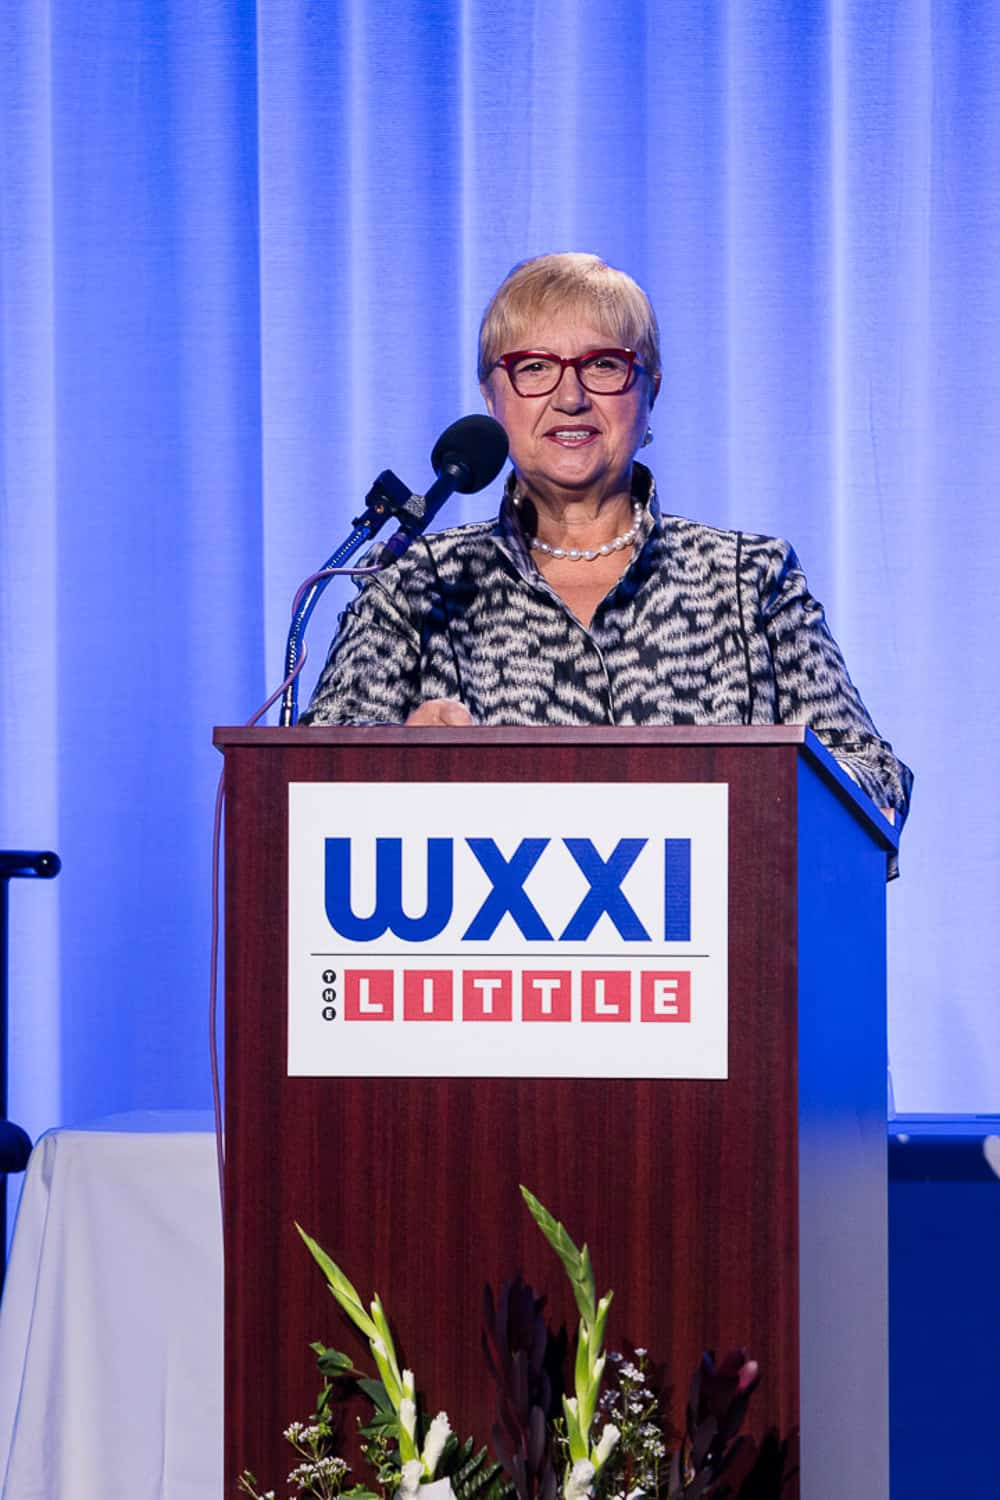 lidia bastianich speaks at a wxxi event.